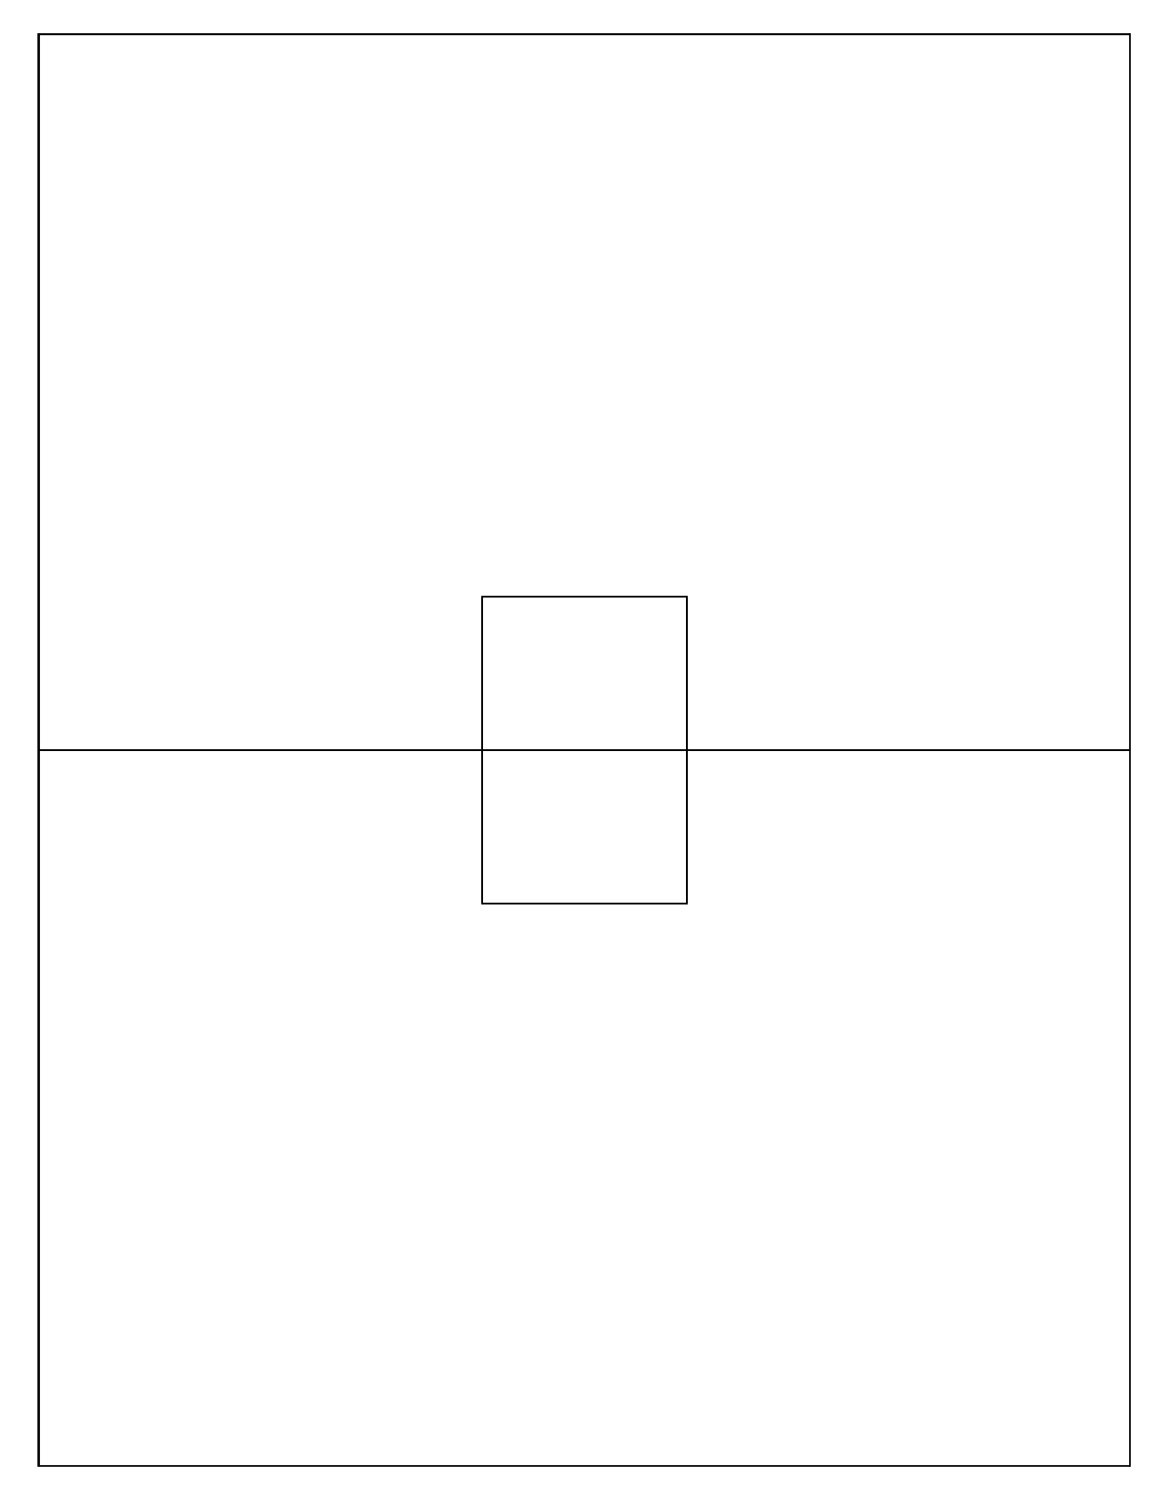 Images Of Pop Up Card Free Printable Template  Zeept Regarding Printable Pop Up Card Templates Free